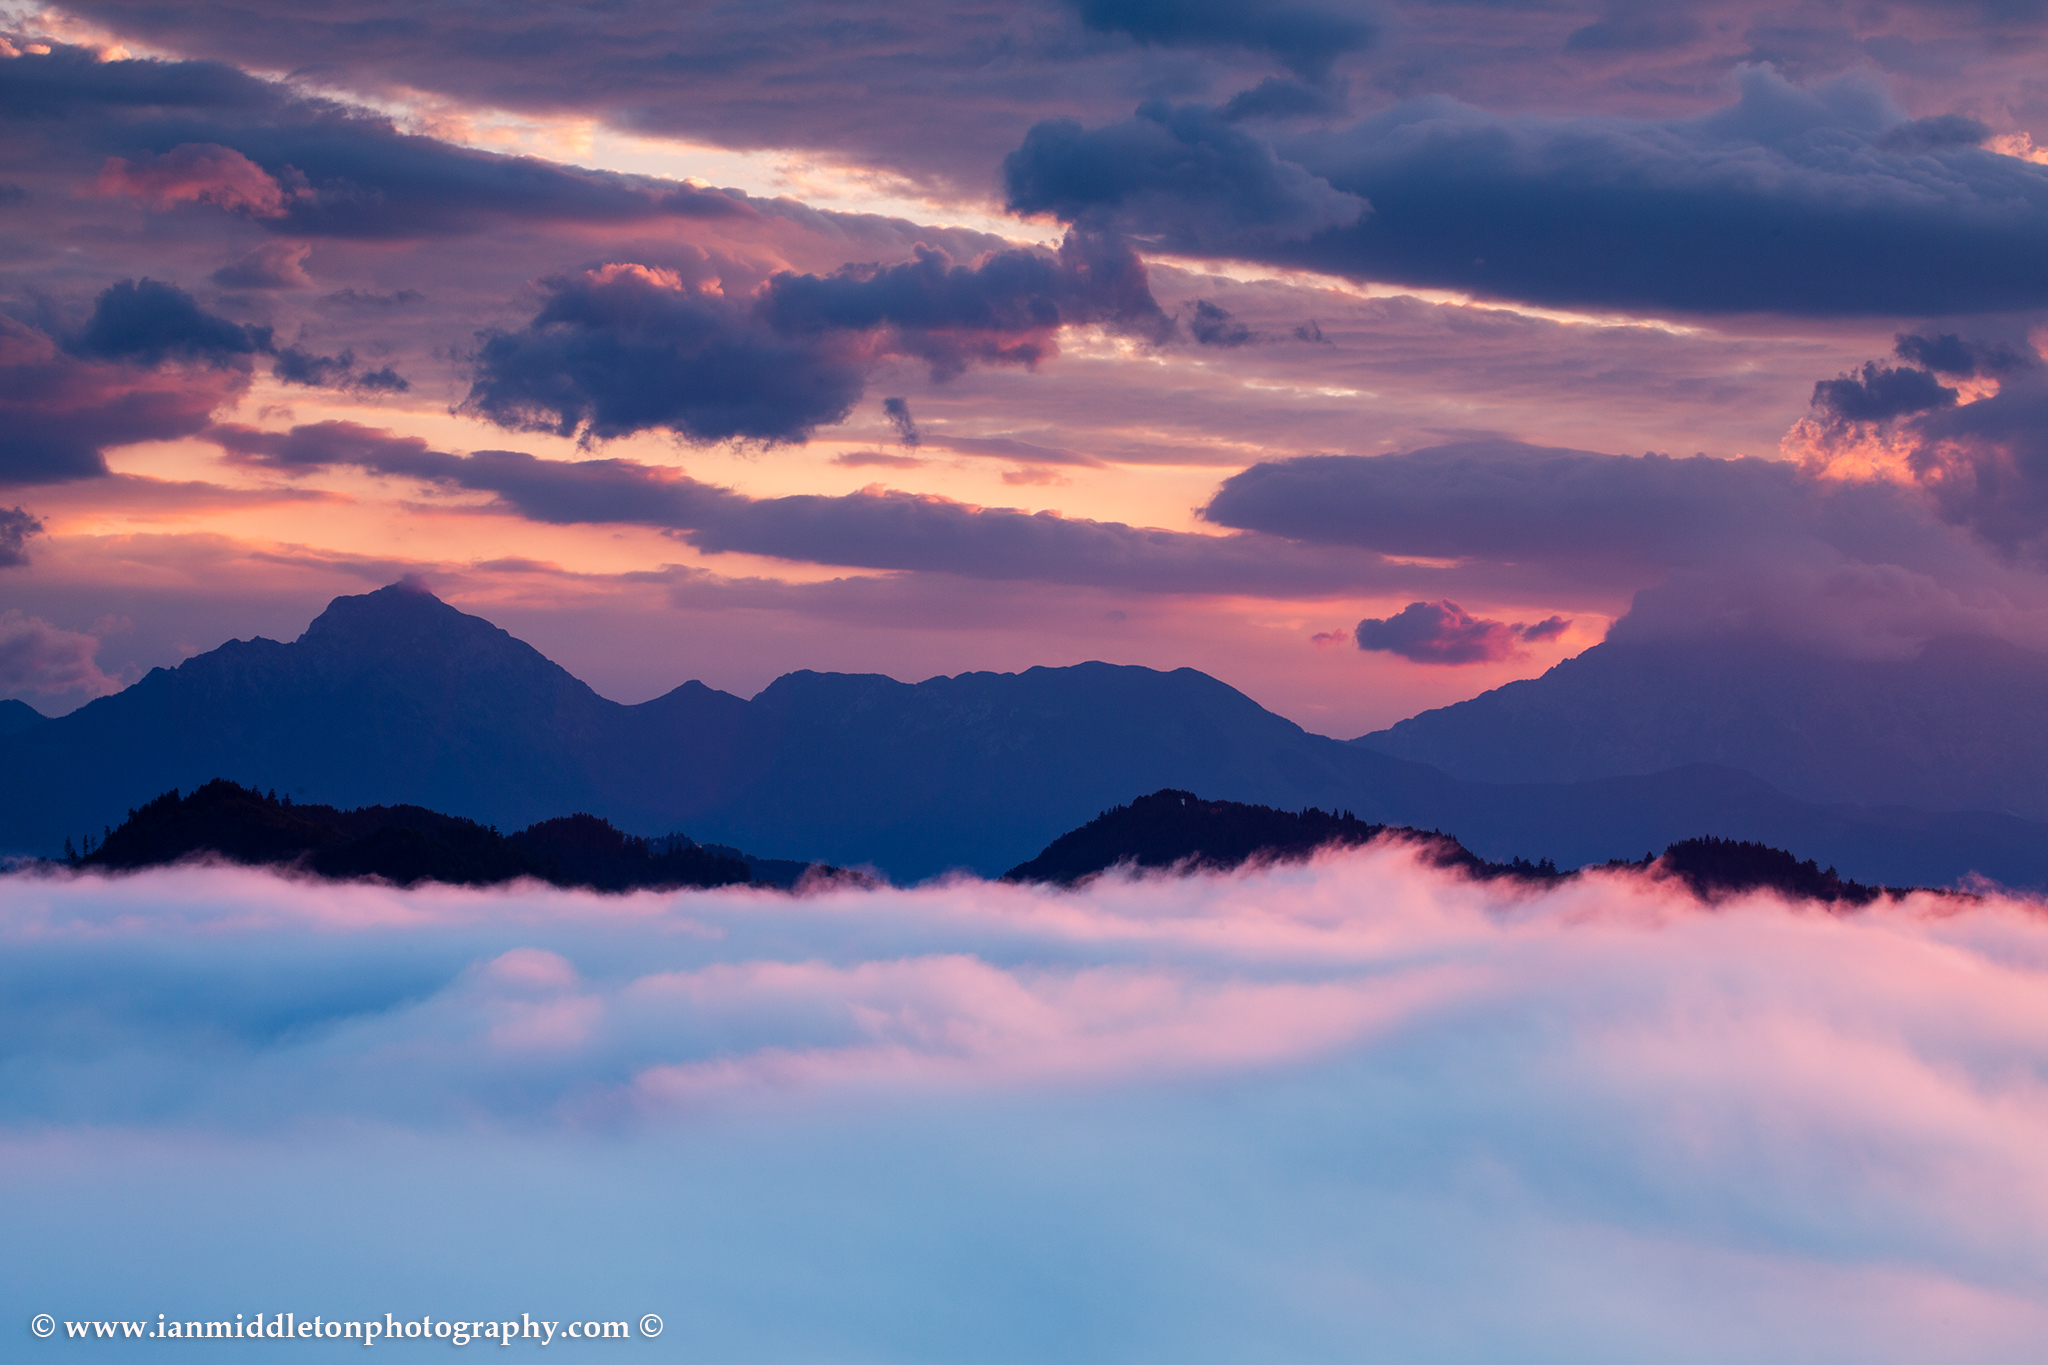 View across to Mount Storzic at sunrise from Rantovše hill near Skofja Loka, Slovenia.